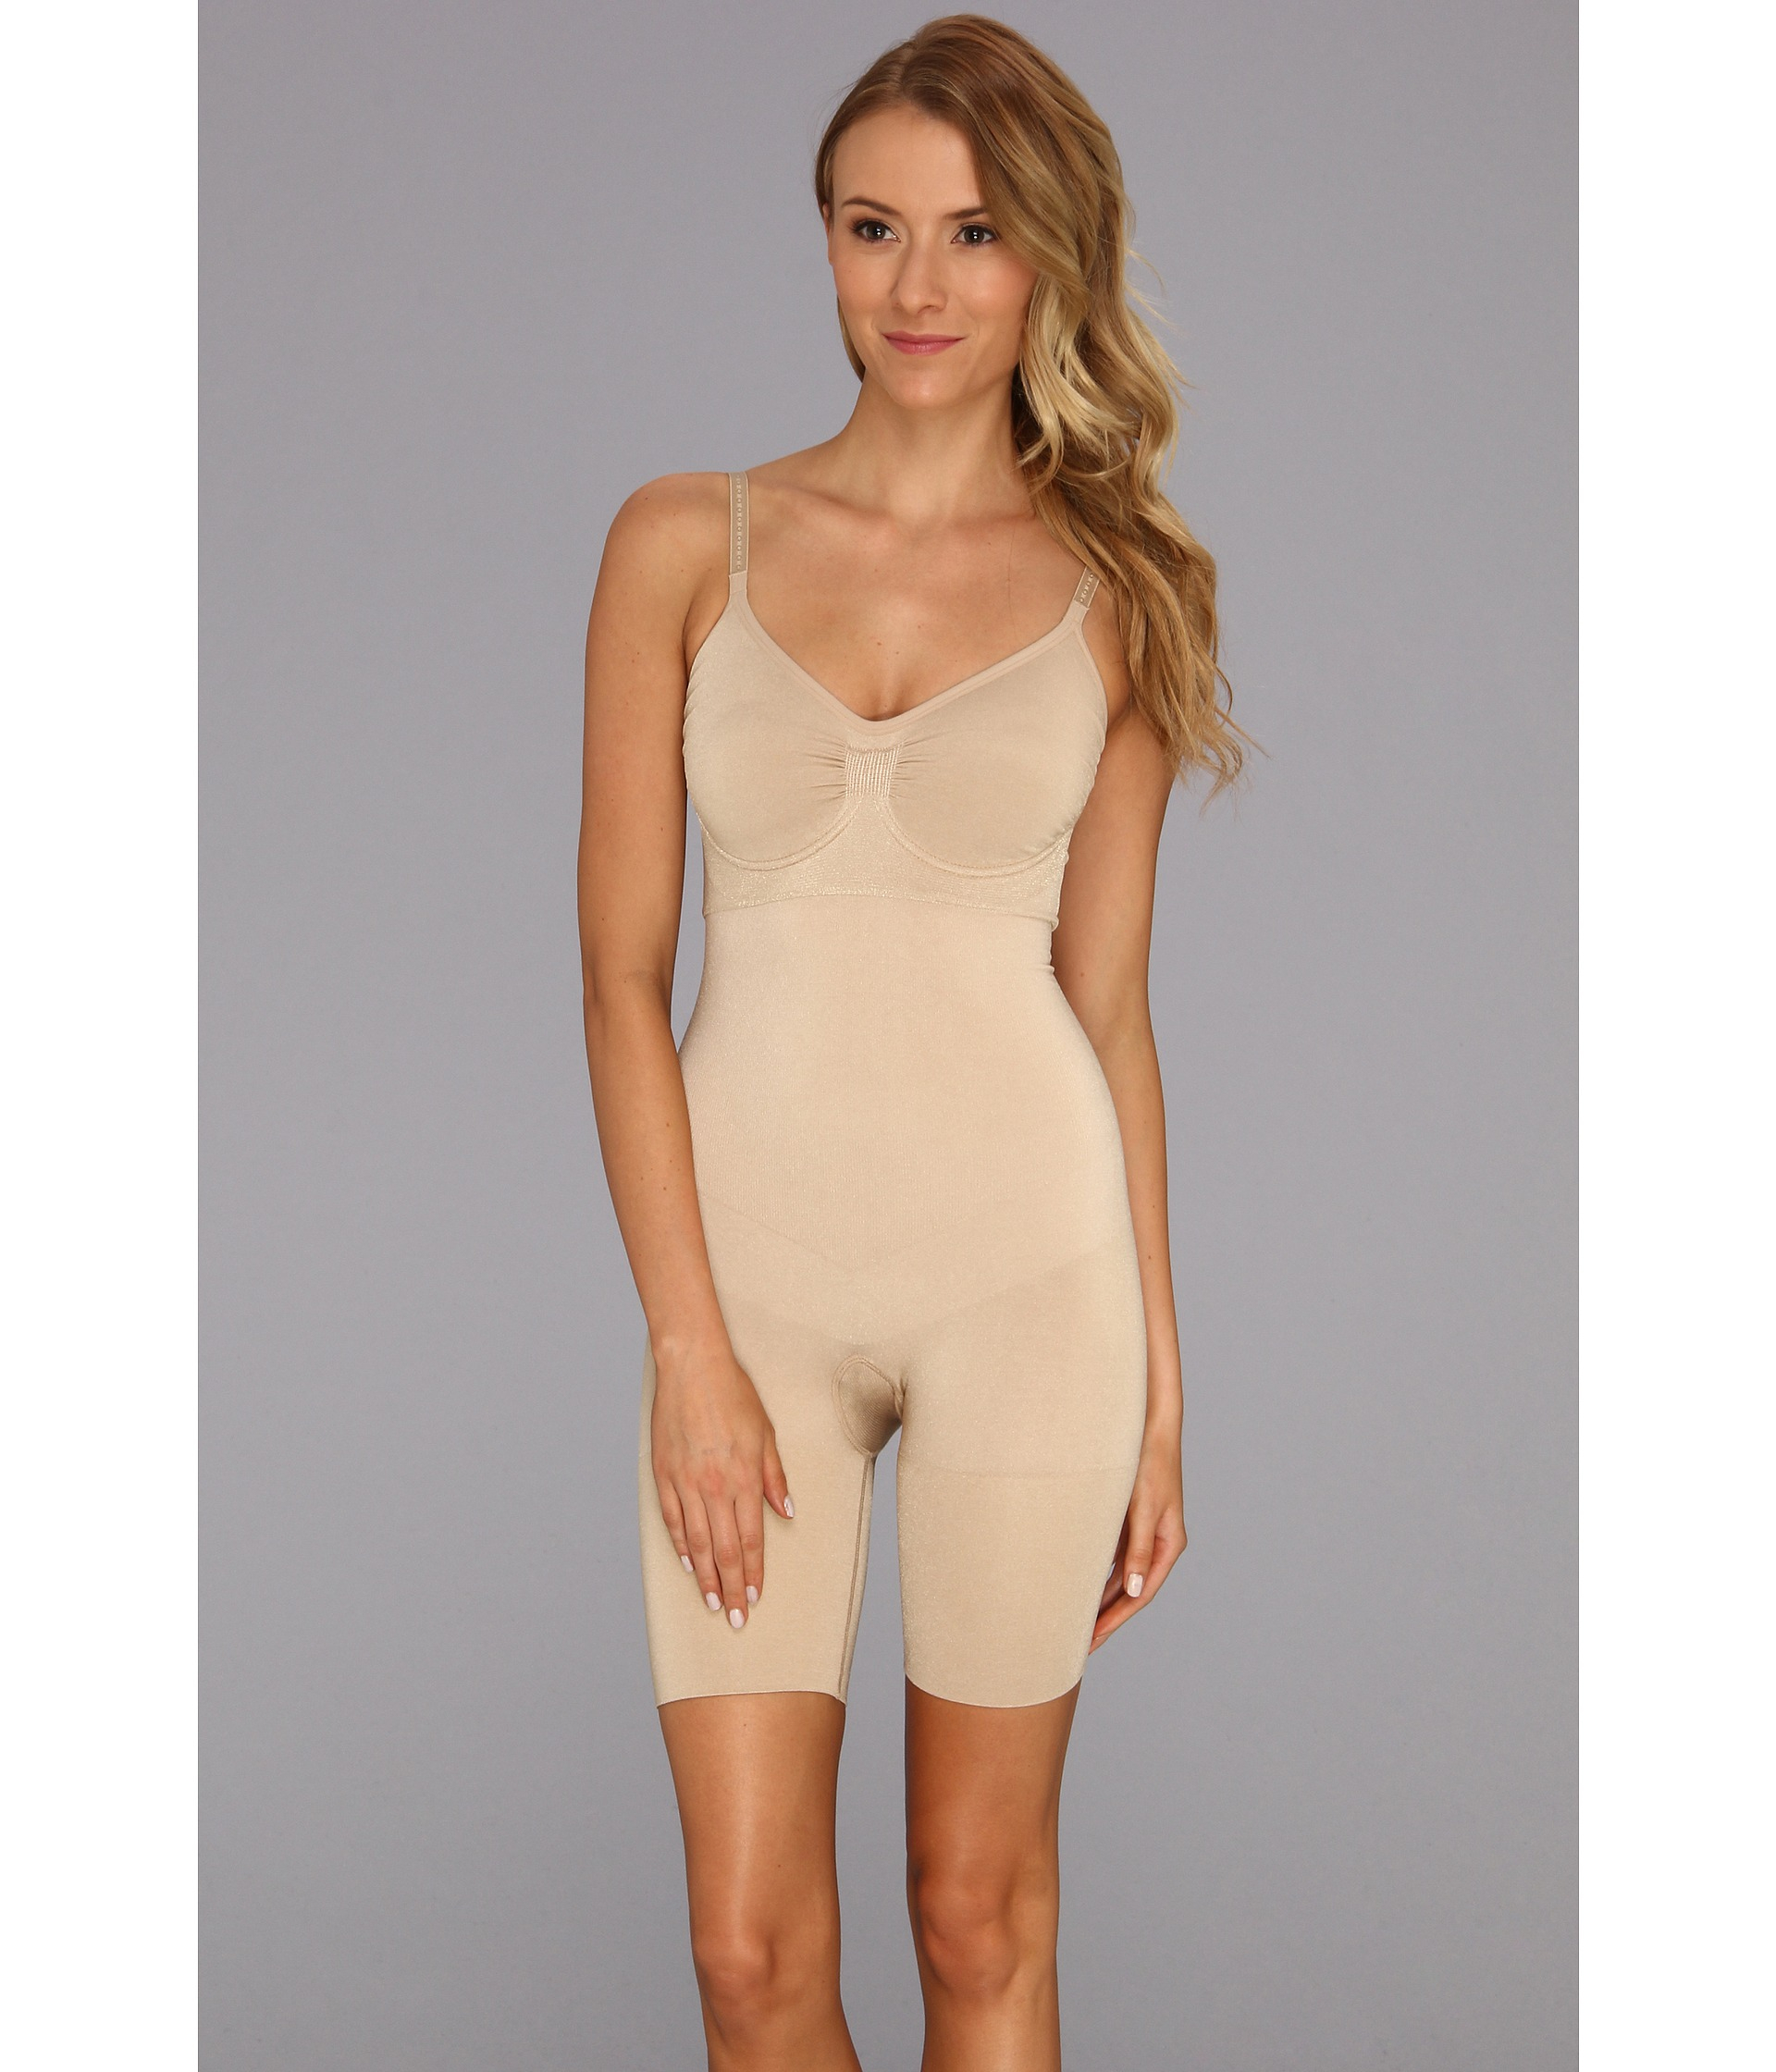 20a78480ca1c7 Lyst - Spanx Slim Cognito Shape Suit in Natural